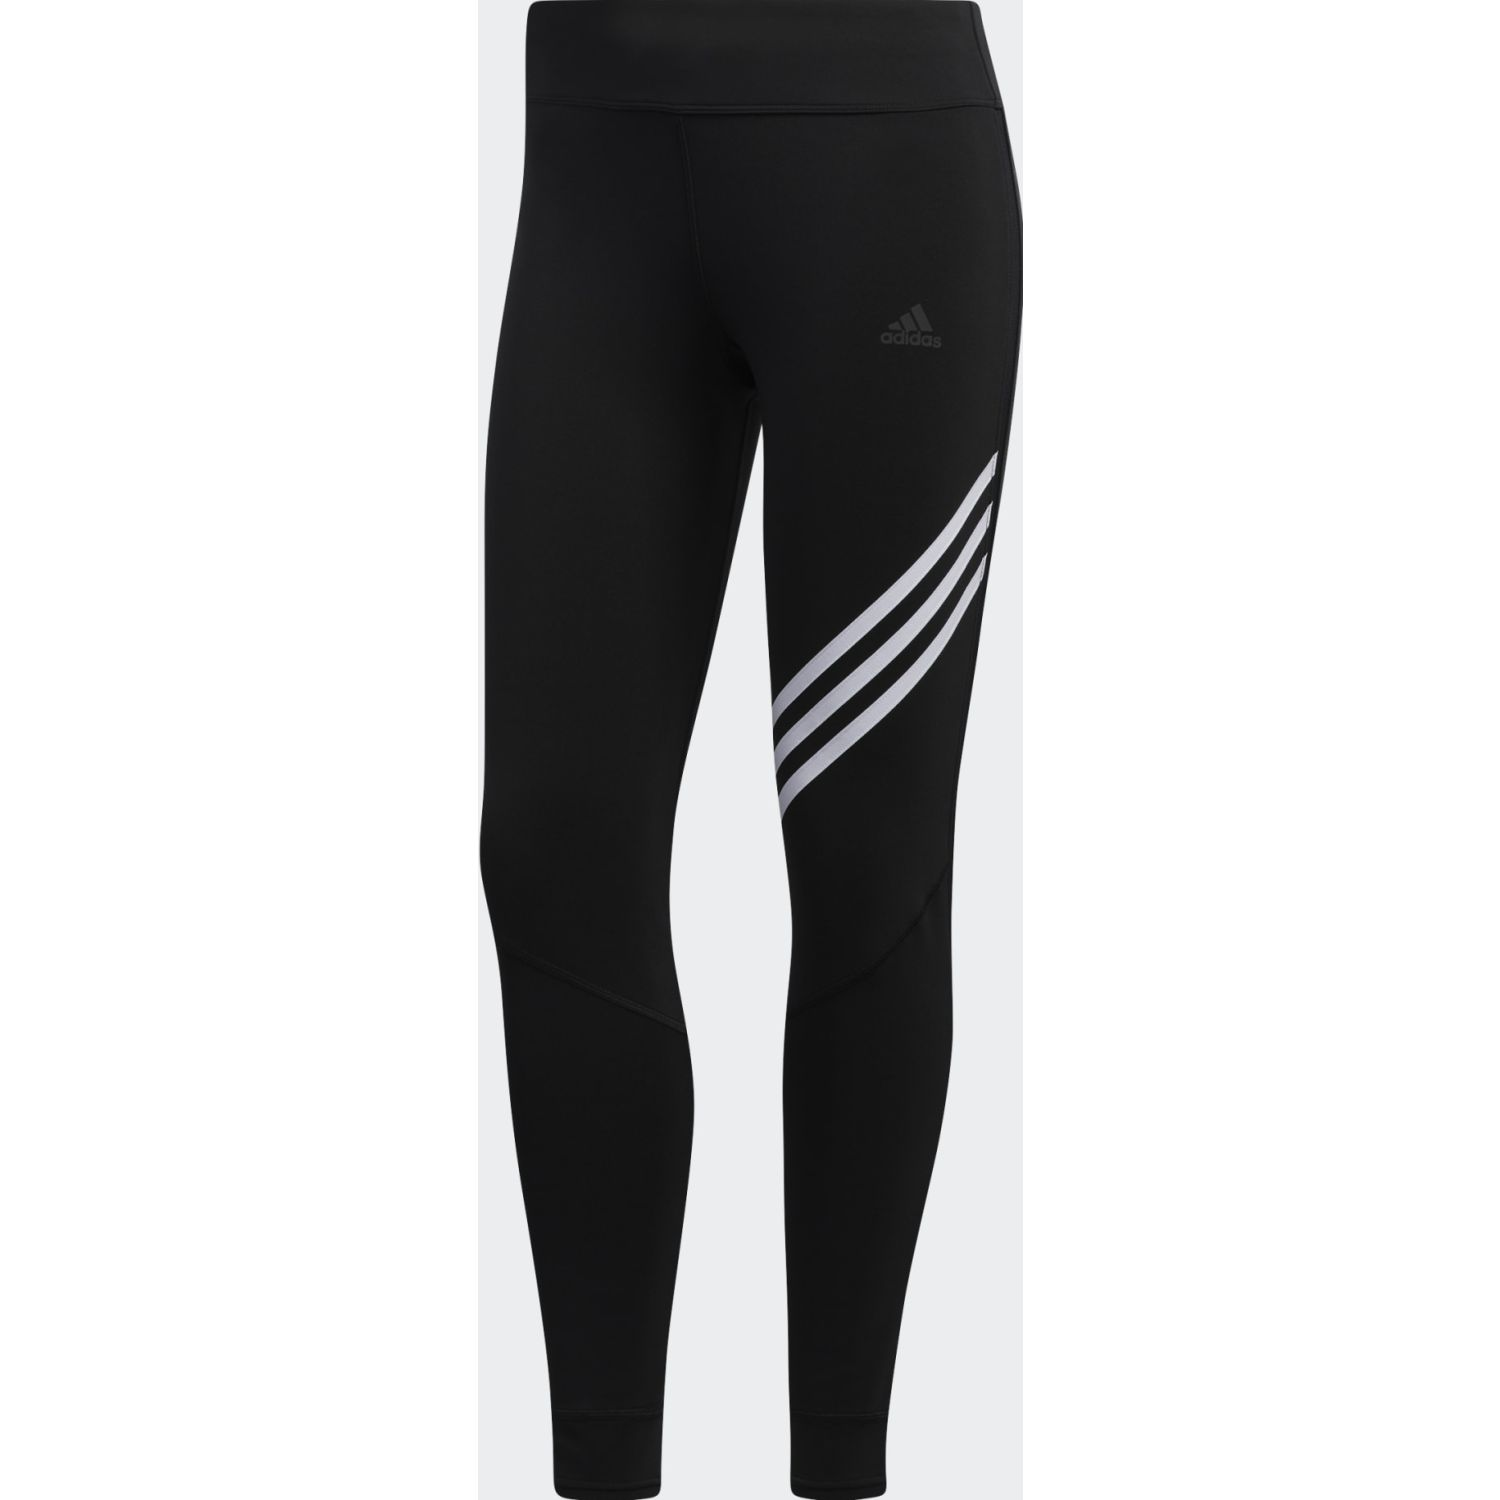 Adidas Run It Tight Negro / blanco Leggings deportivos